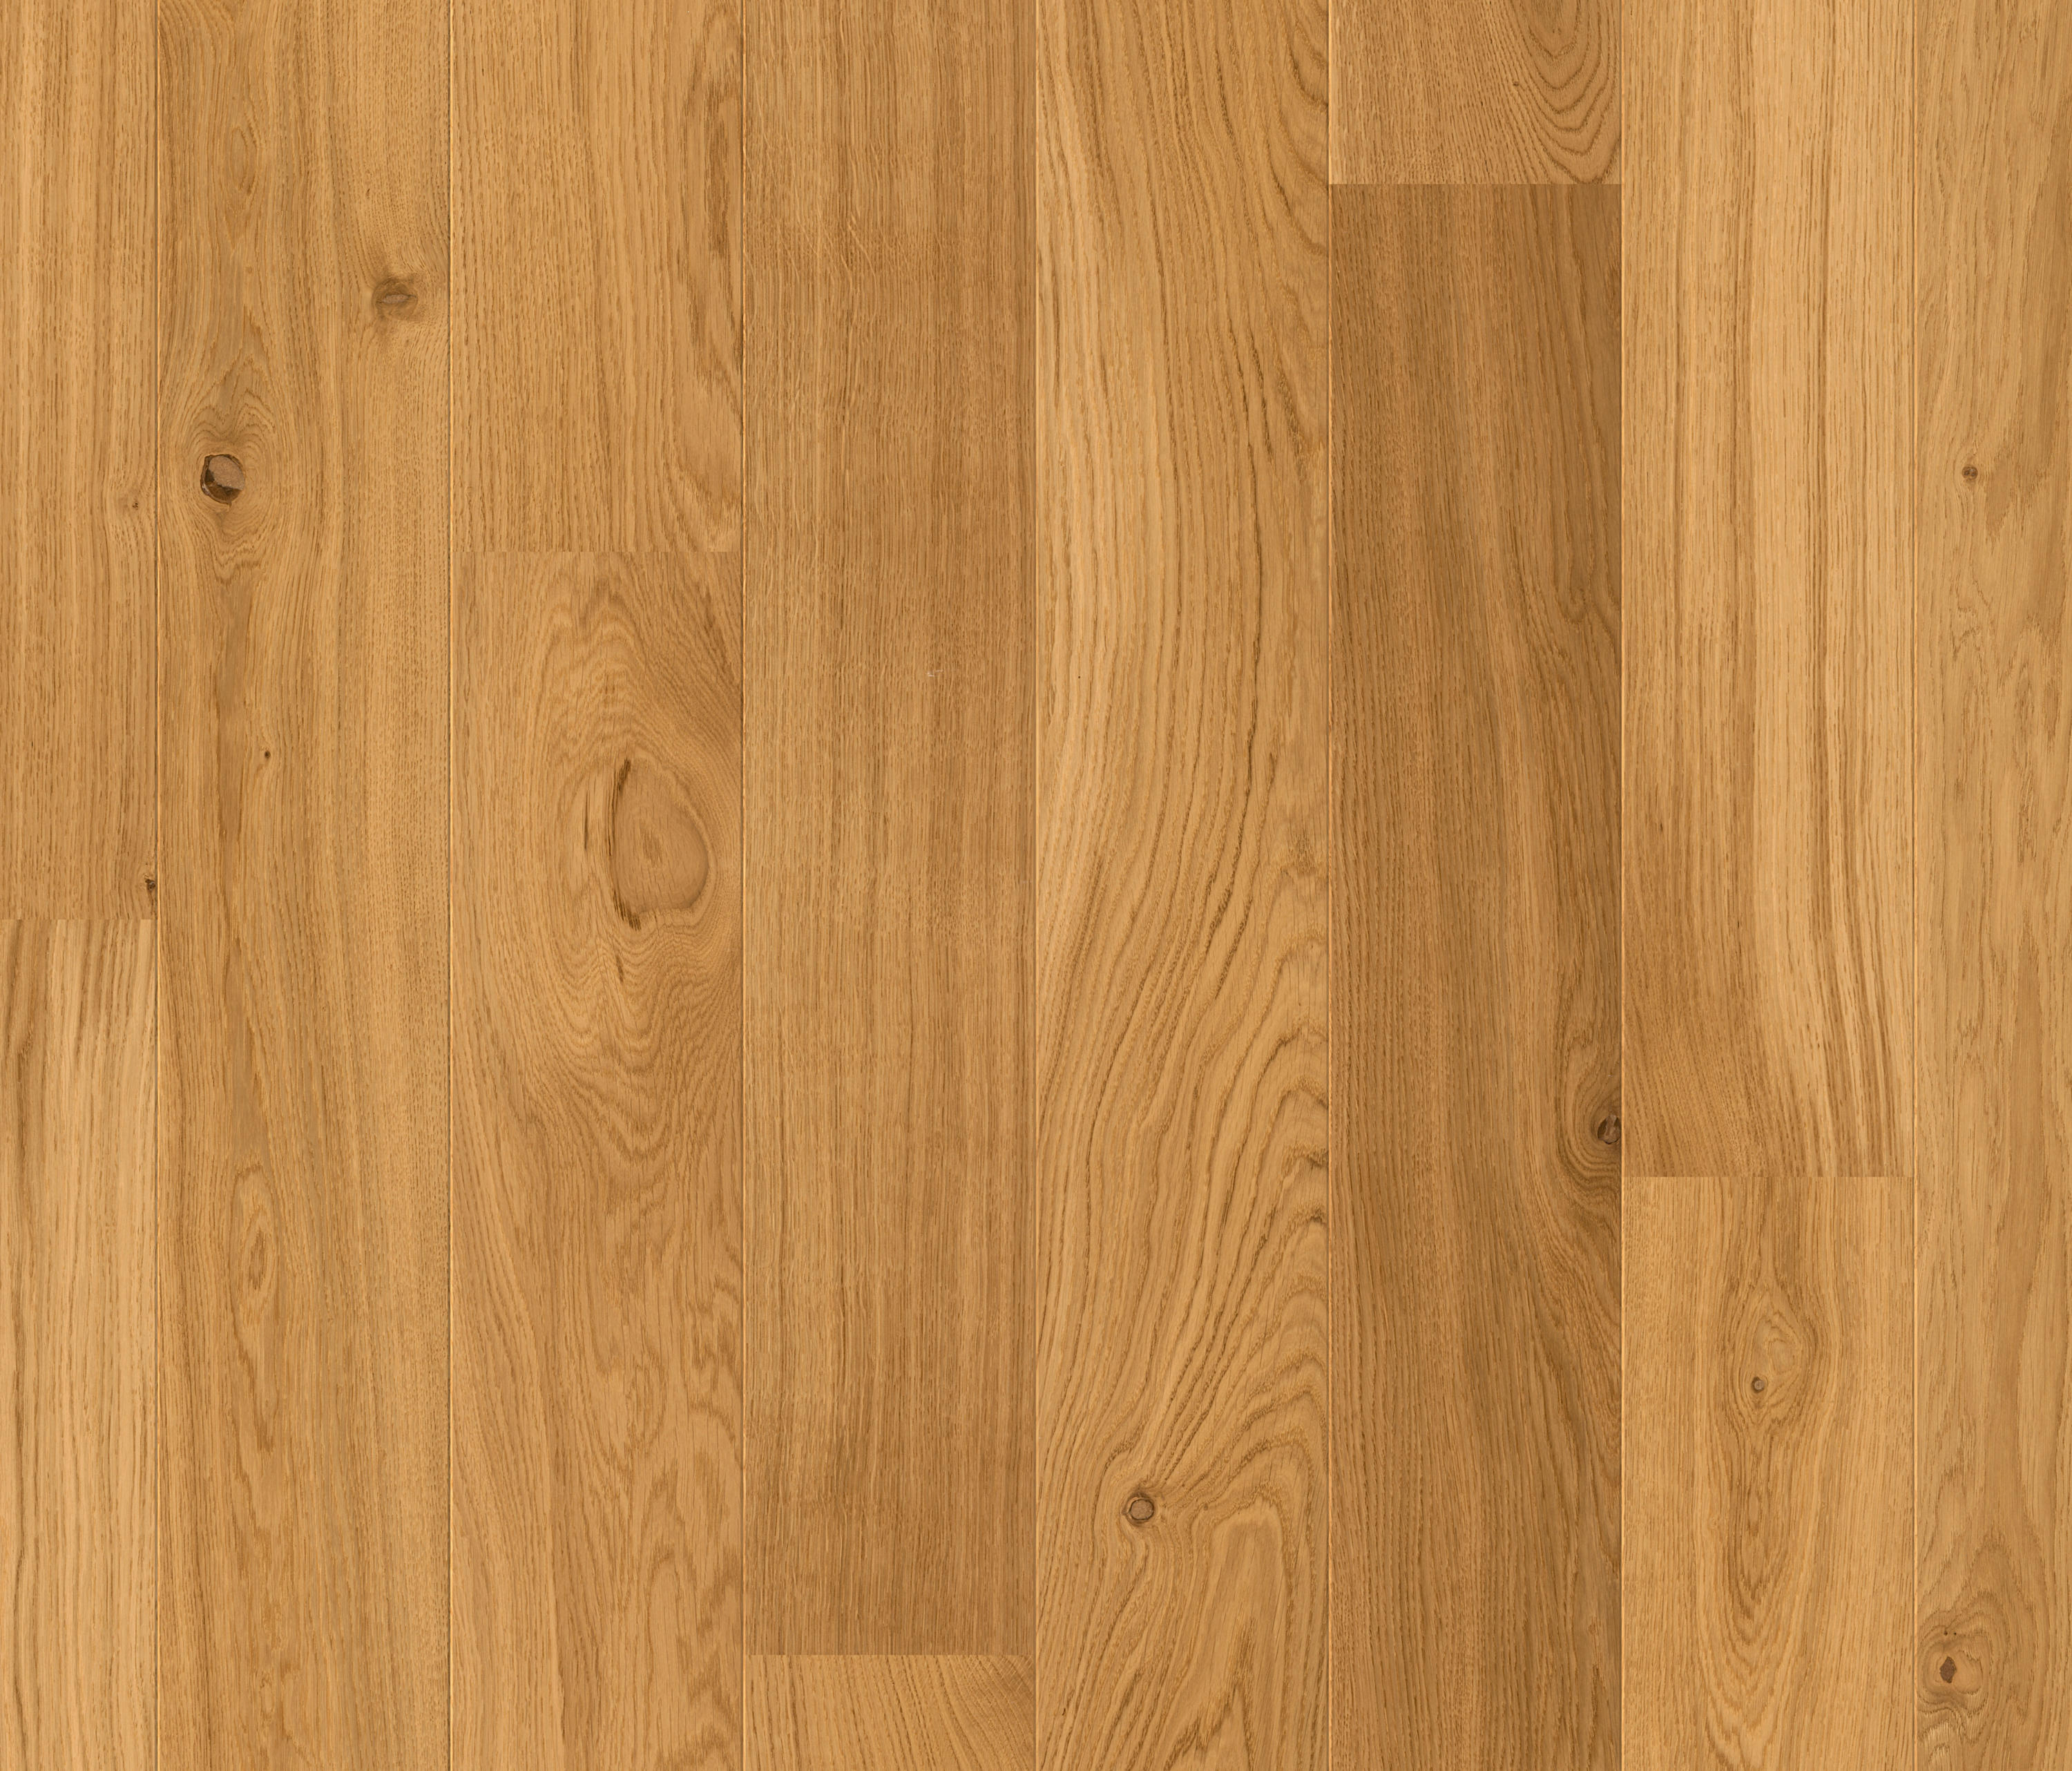 floor highland hickory review linoleum max laminate installation pergo home hicko coffee design floors how handscraped for complaints to wood xp install lowes flooring harmonics